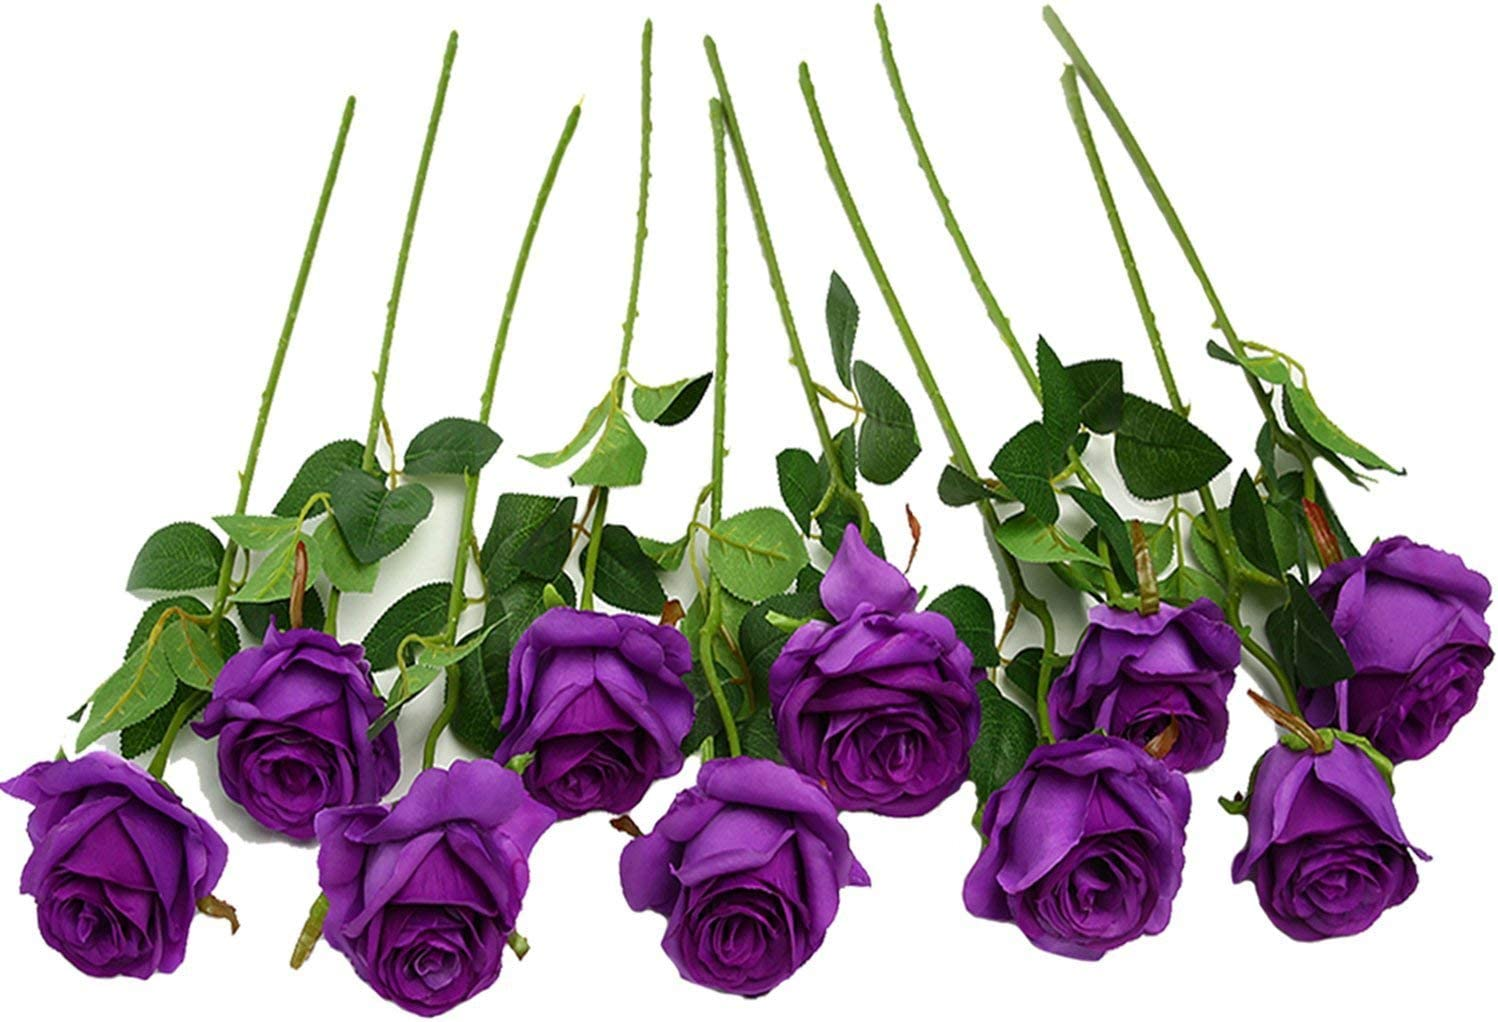 JUSTOYOU 10pcs Artificial Rose Silk Flower Blossom Bridal Bouquet for Home Wedding Decor(Purple)